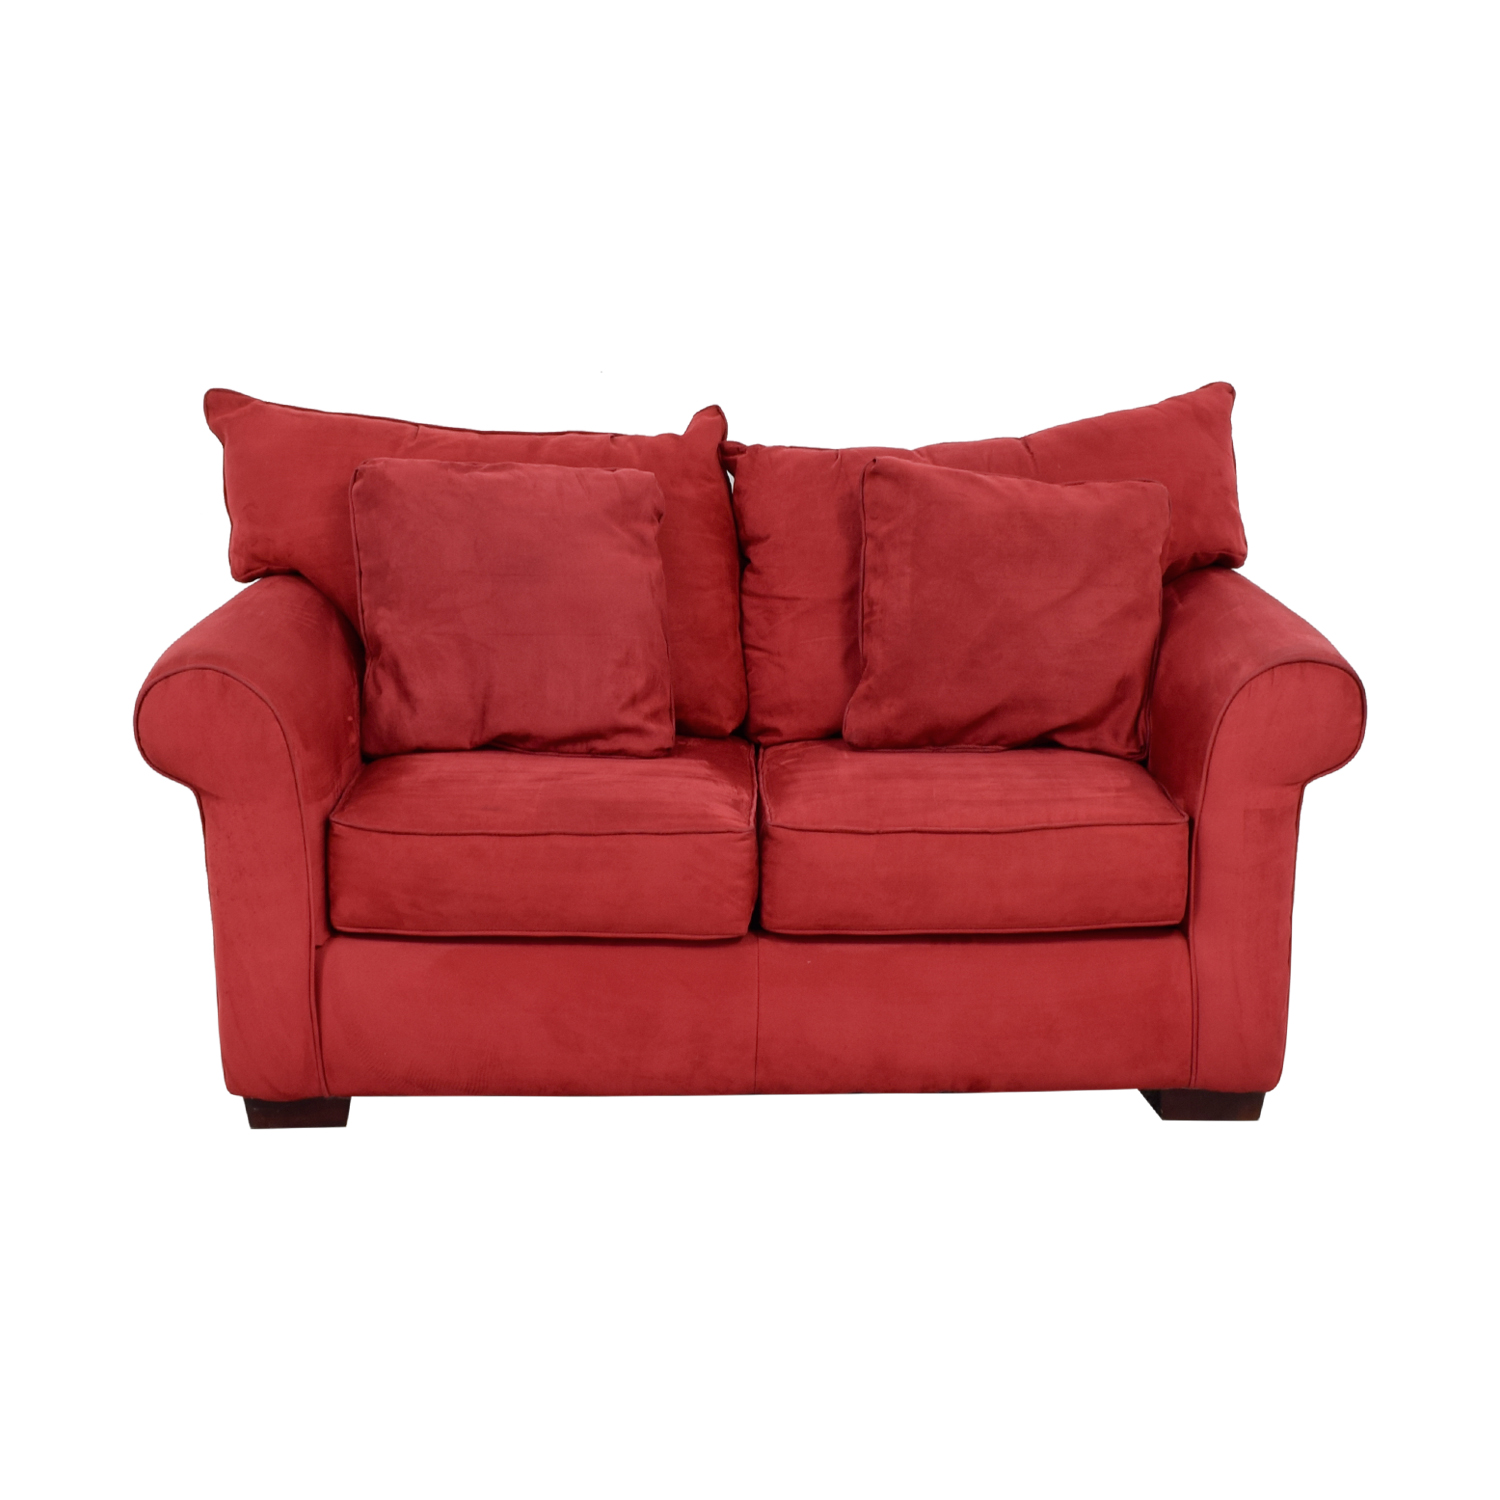 Jackson Furniture Jackson Furniture Red Two-Cushion Loveseat second hand